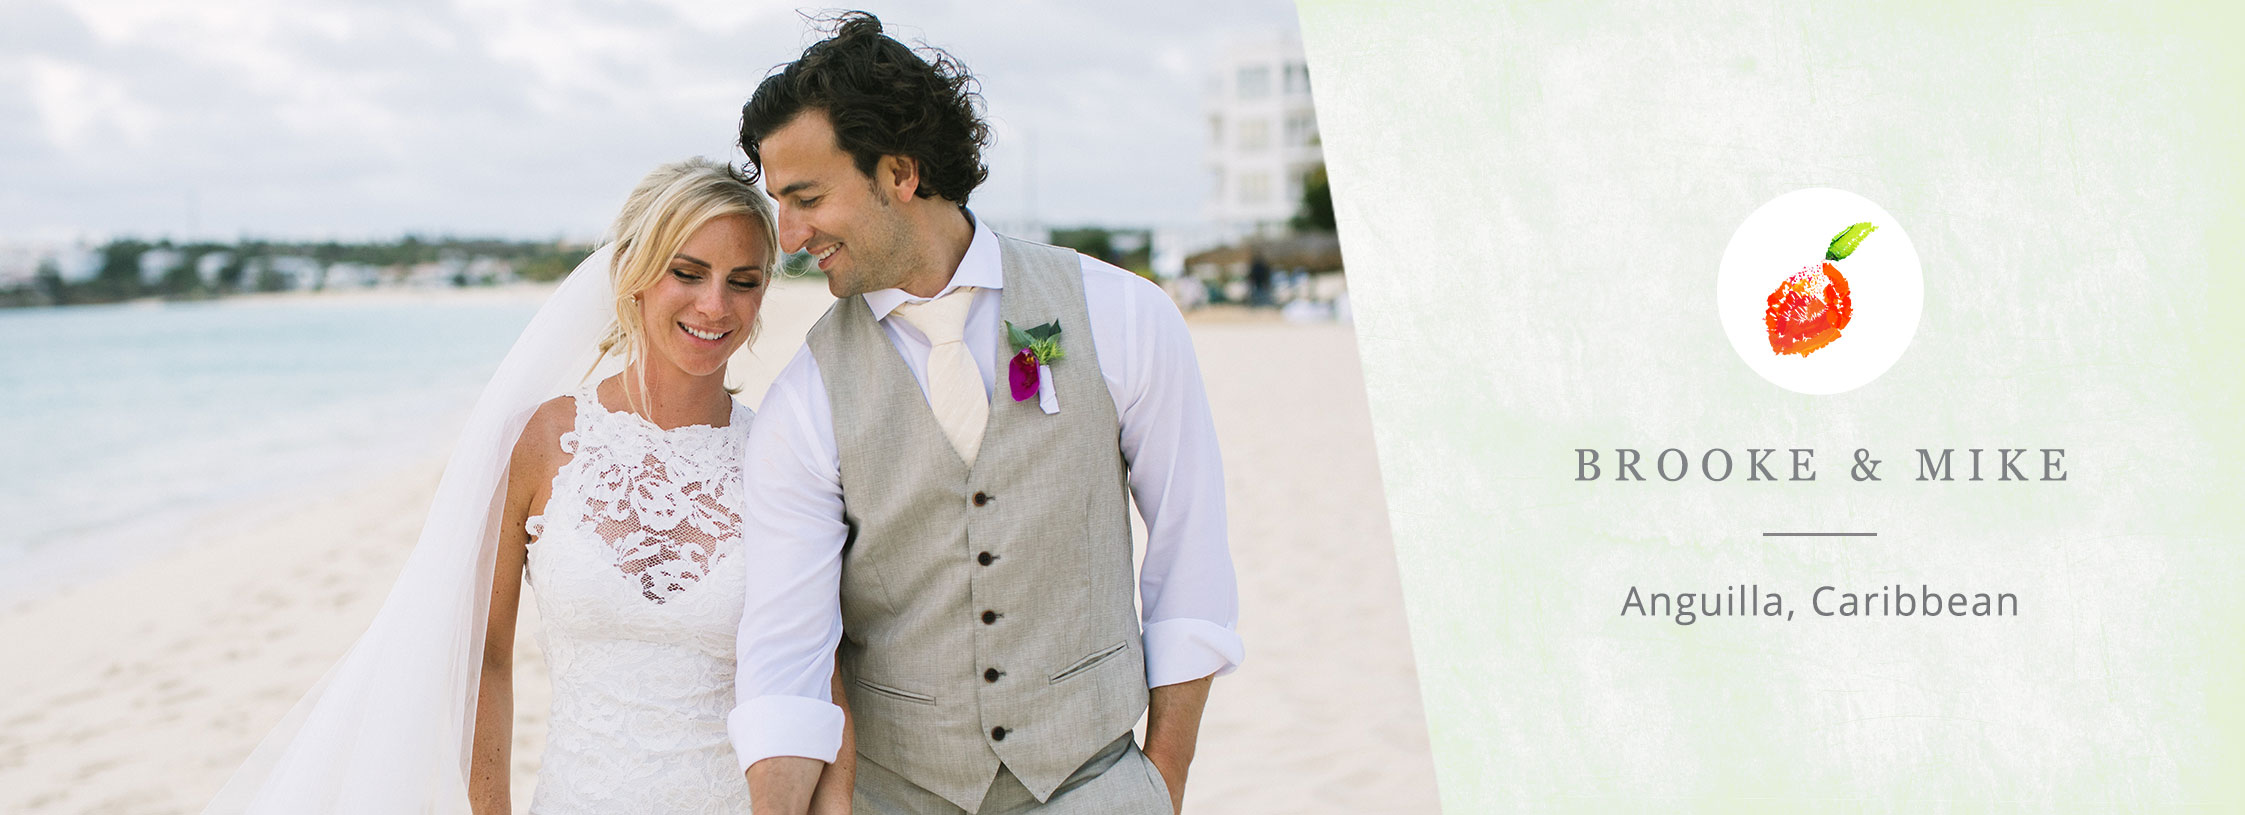 Happy couple at their fun tropical beach wedding in Anguilla Caribbean by destination wedding planner Mango Muse Events